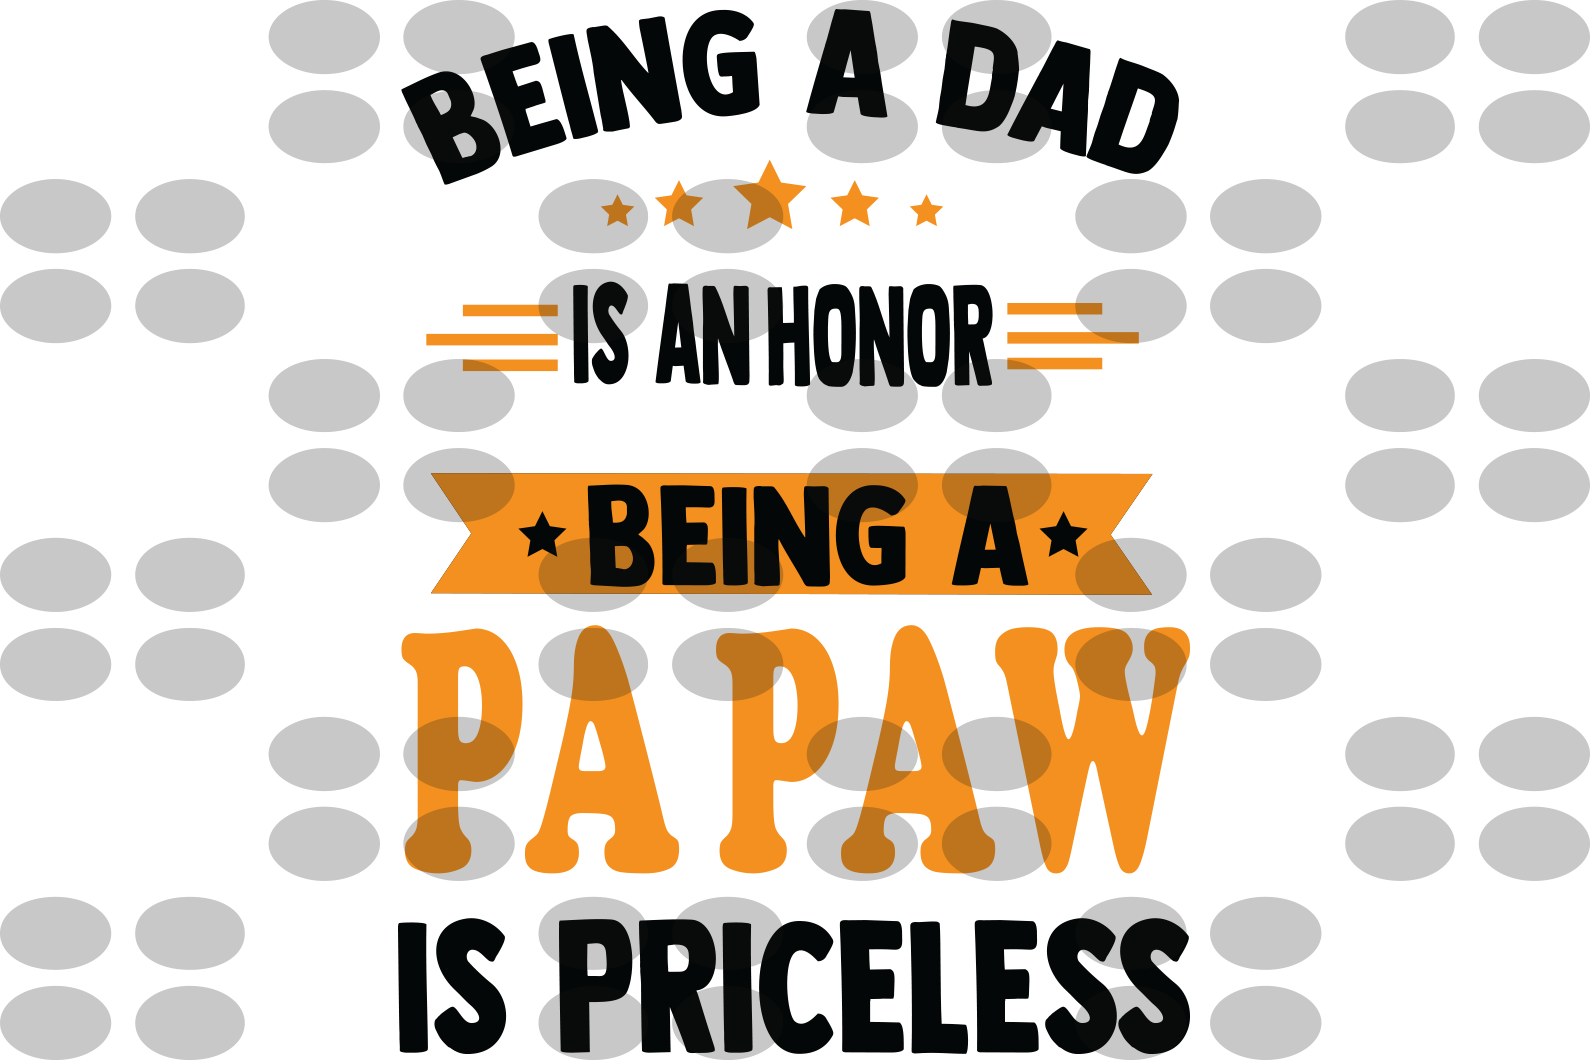 Being A dad Is An Honor Being A papaw svg, father svg, father gifts svg, gifts for father, fatherdy svg, father birthday gift, father shirt, fathers day svg, papa svg, papa gifts svg, gift for papa